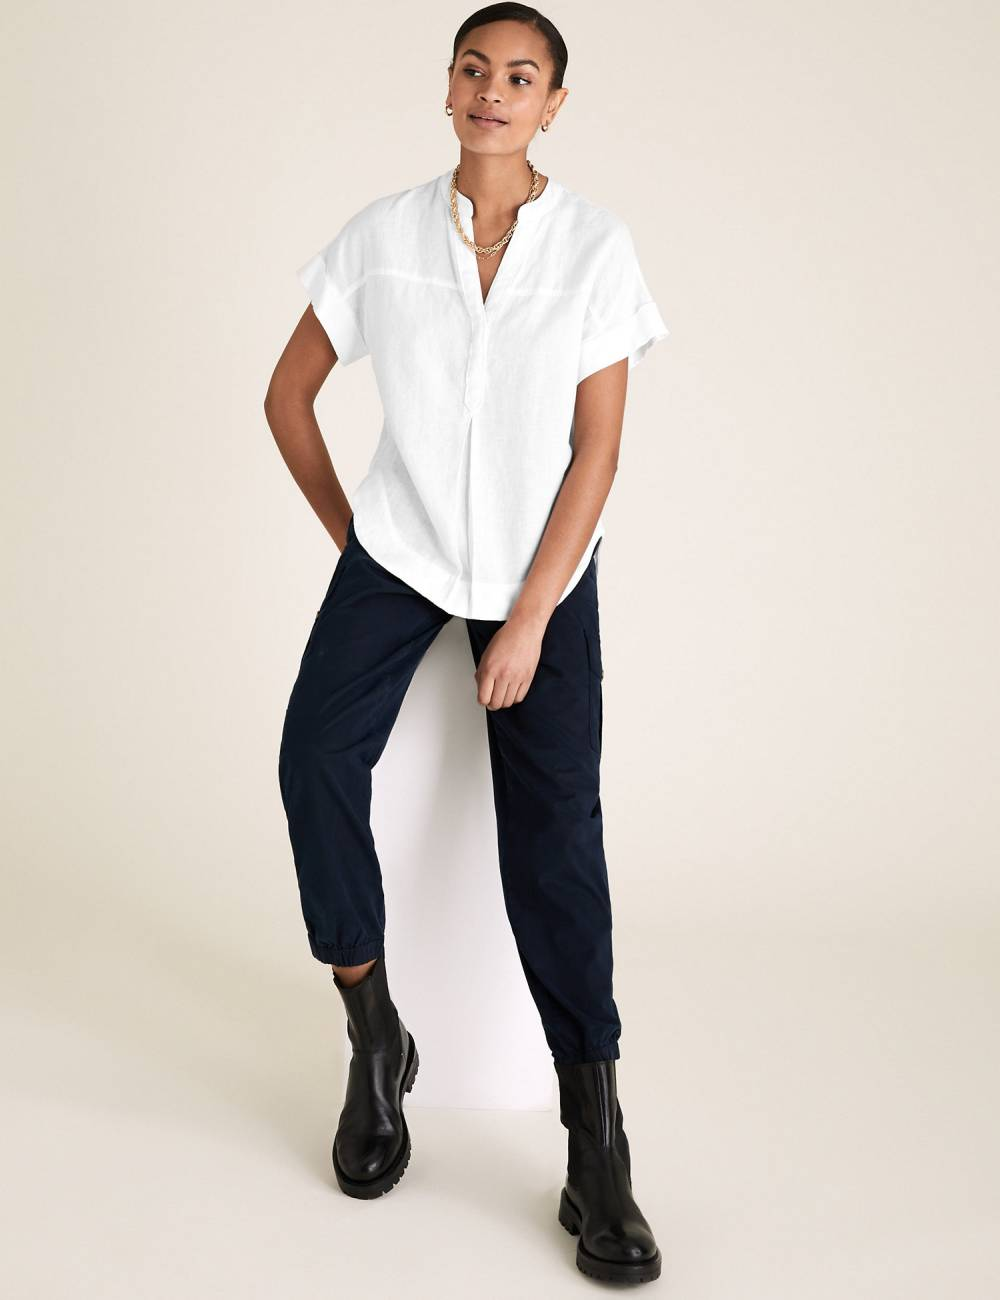 marks and spencer european linen clothing